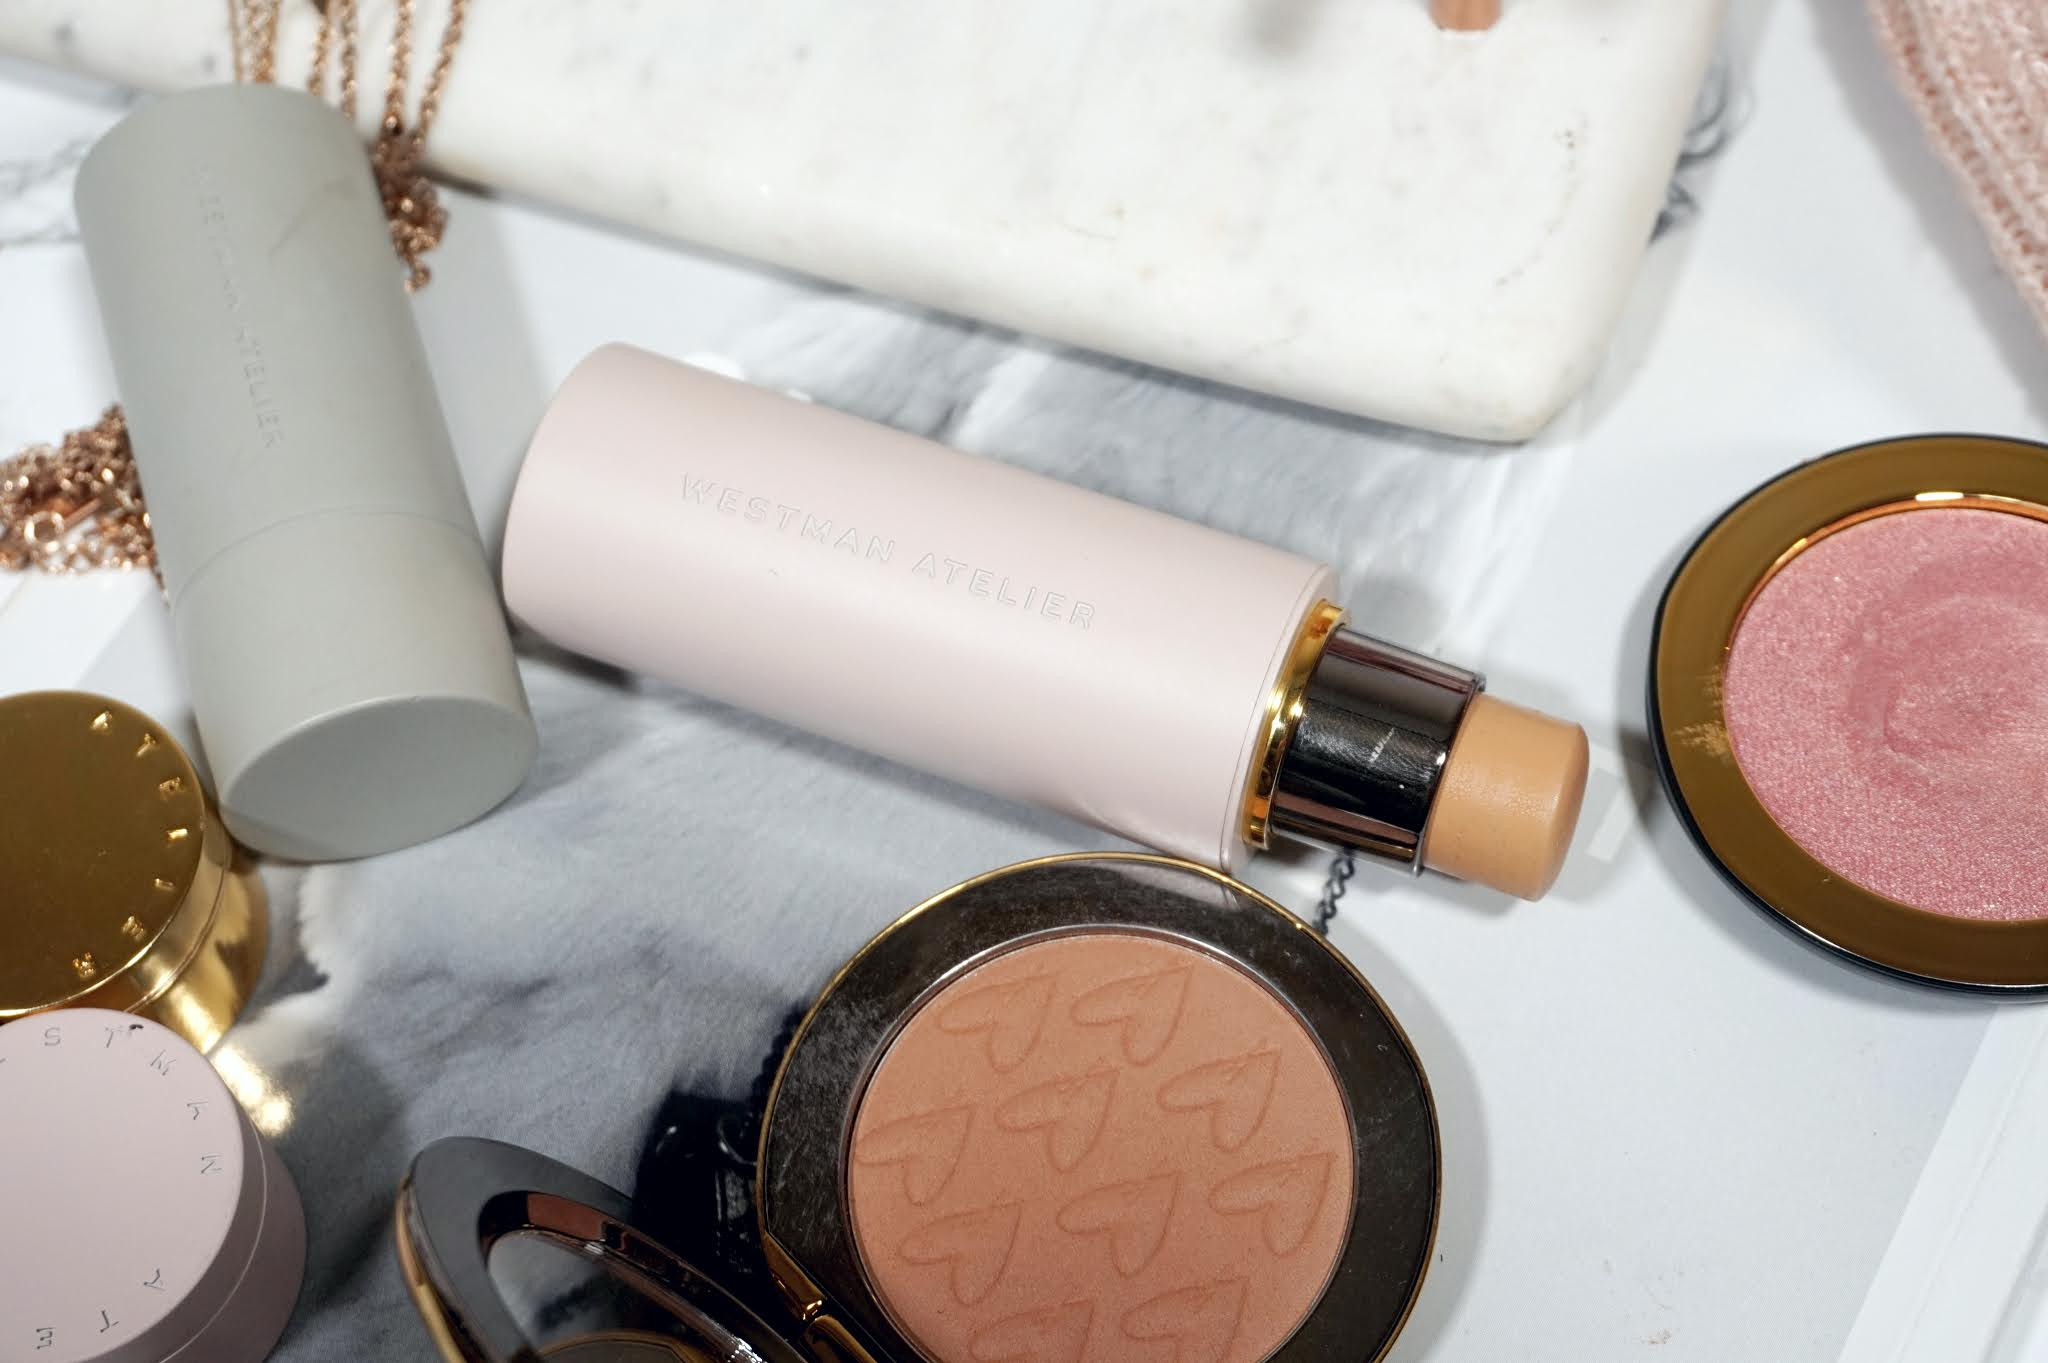 Westman Atelier Vital Skin Foundation Stick Review and Swatches